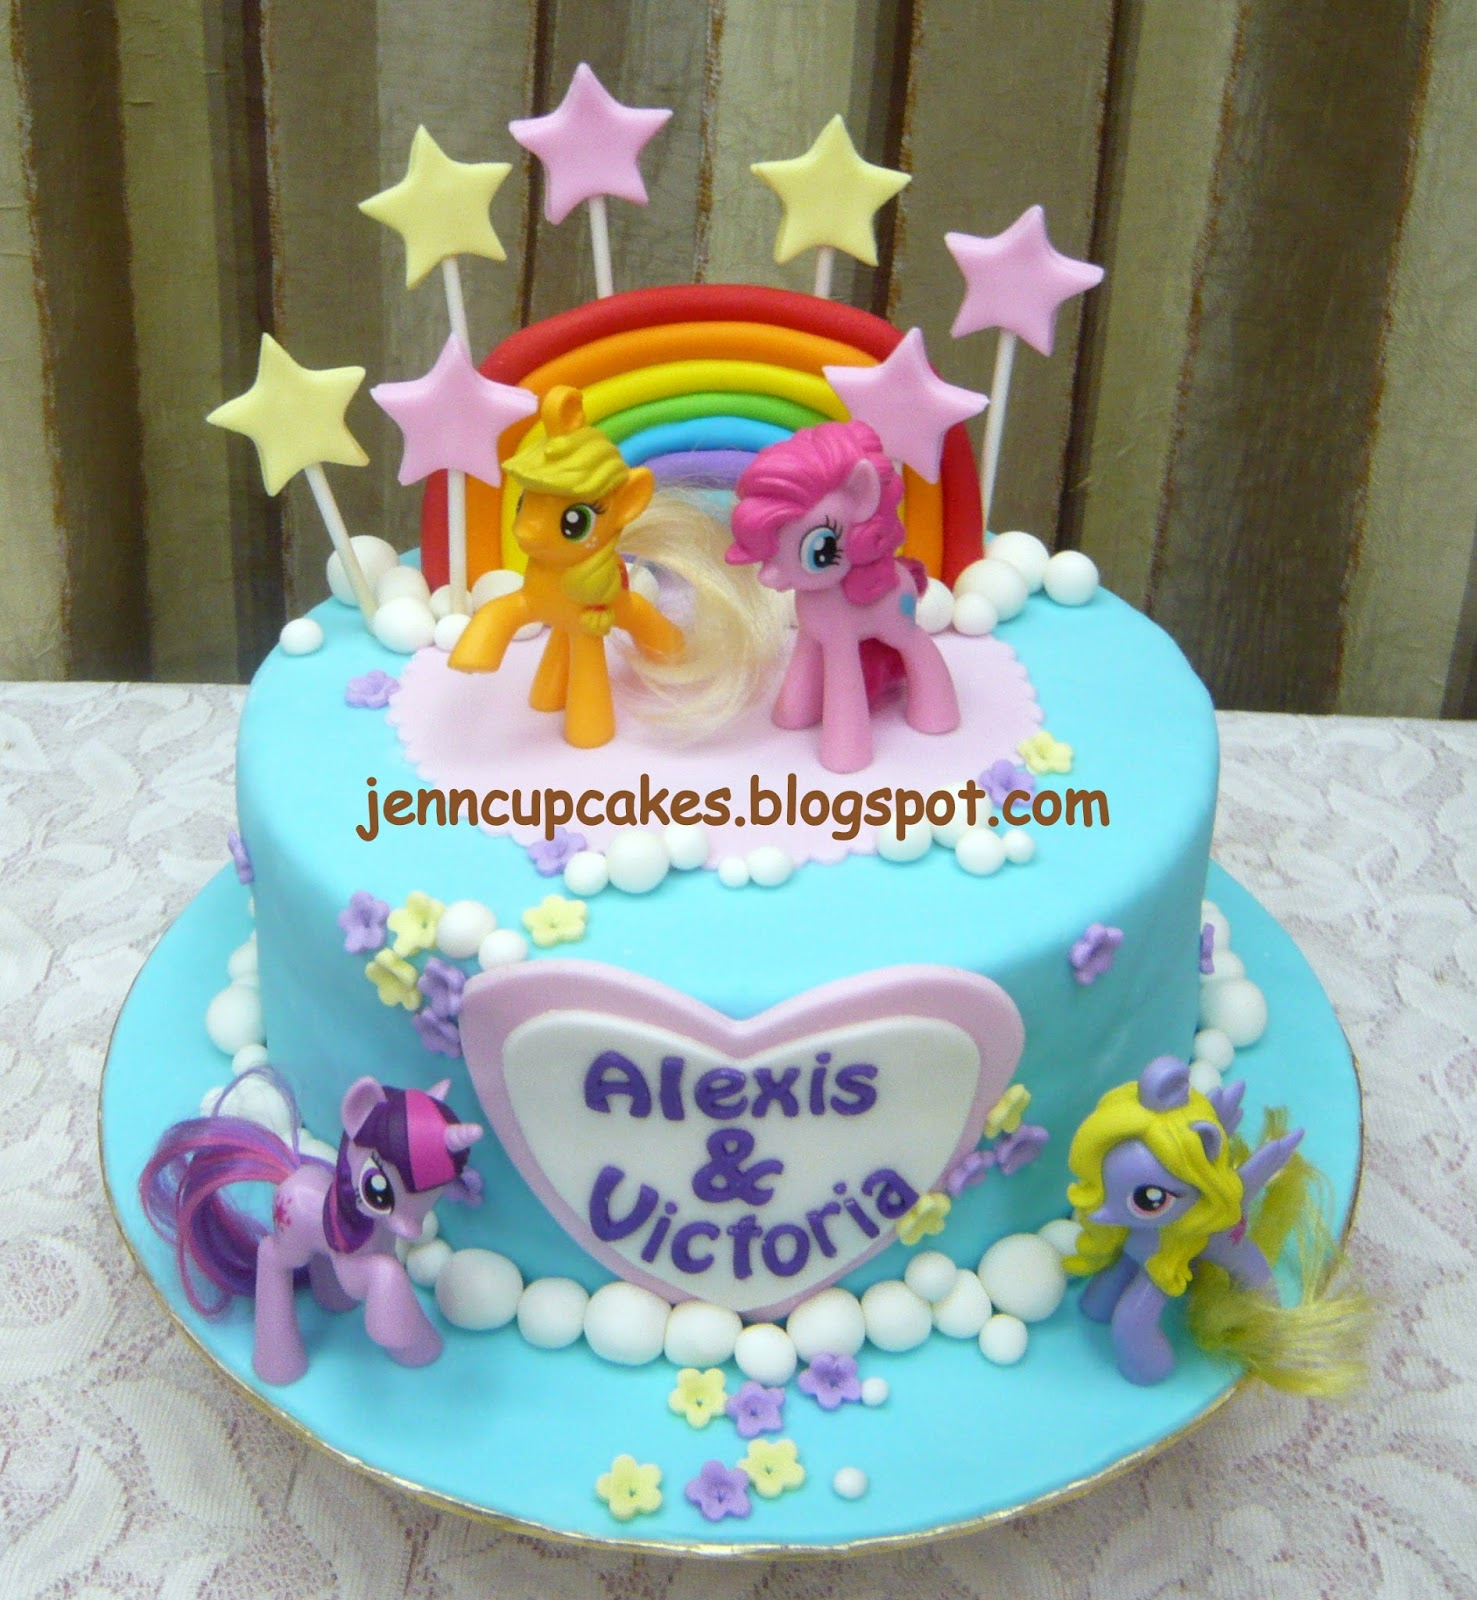 Home Decorating Ideas Pinterest Jenn Cupcakes Amp Muffins My Little Pony Cake